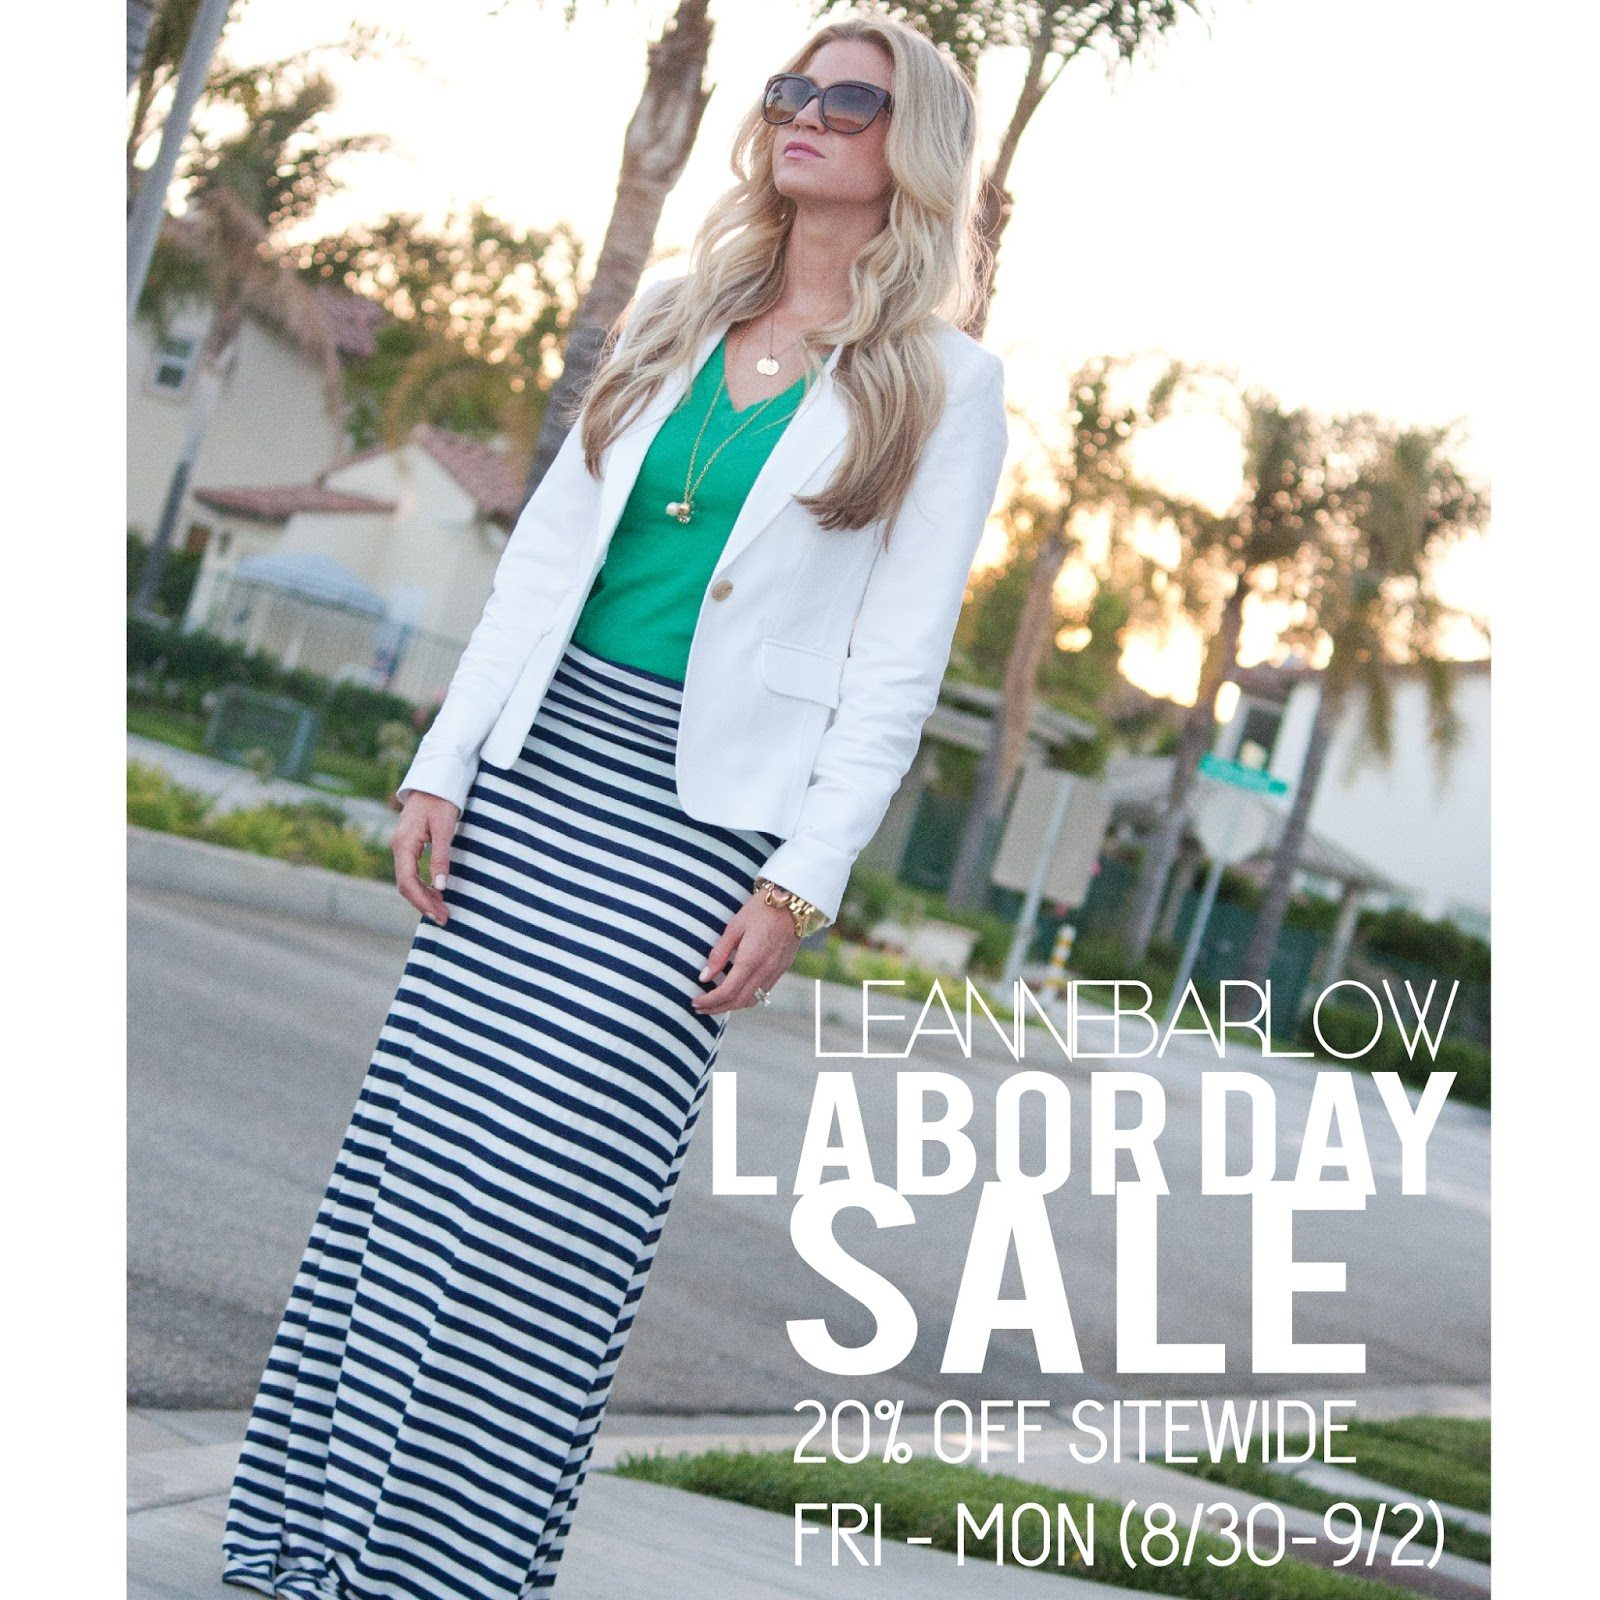 LEANNE BARLOW LABOR DAY SALE!